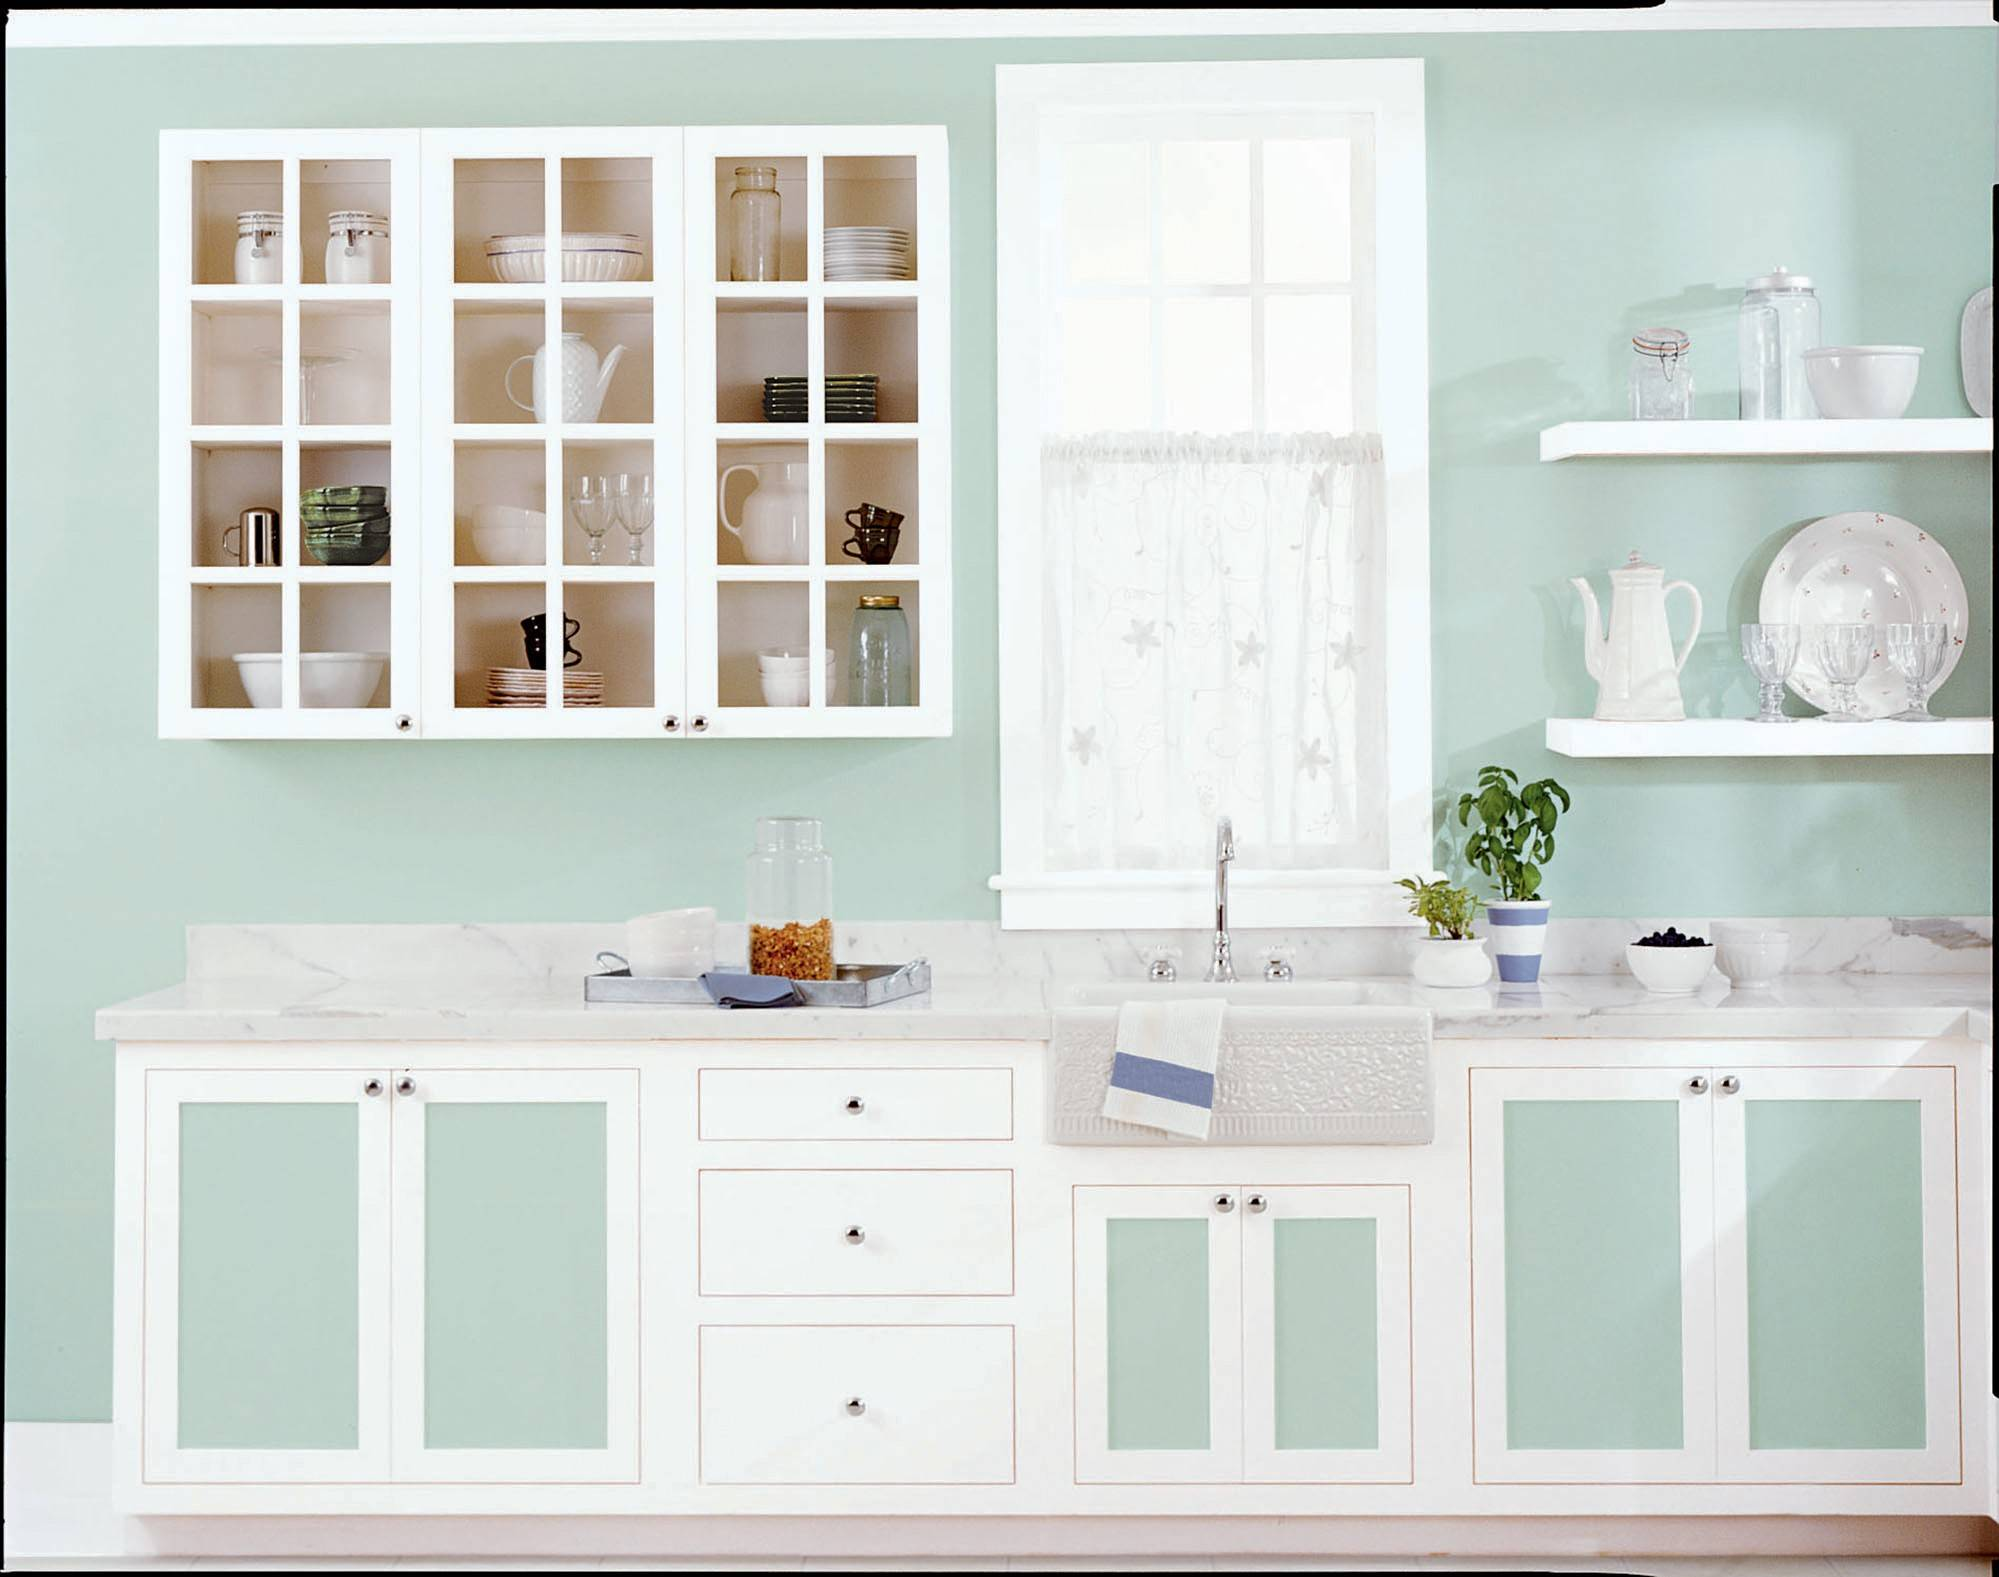 This crisply painted kitchen features Behr's Valley Mist and Ultra Pure White. People typically try three to five paint colors before deciding on their final selection.